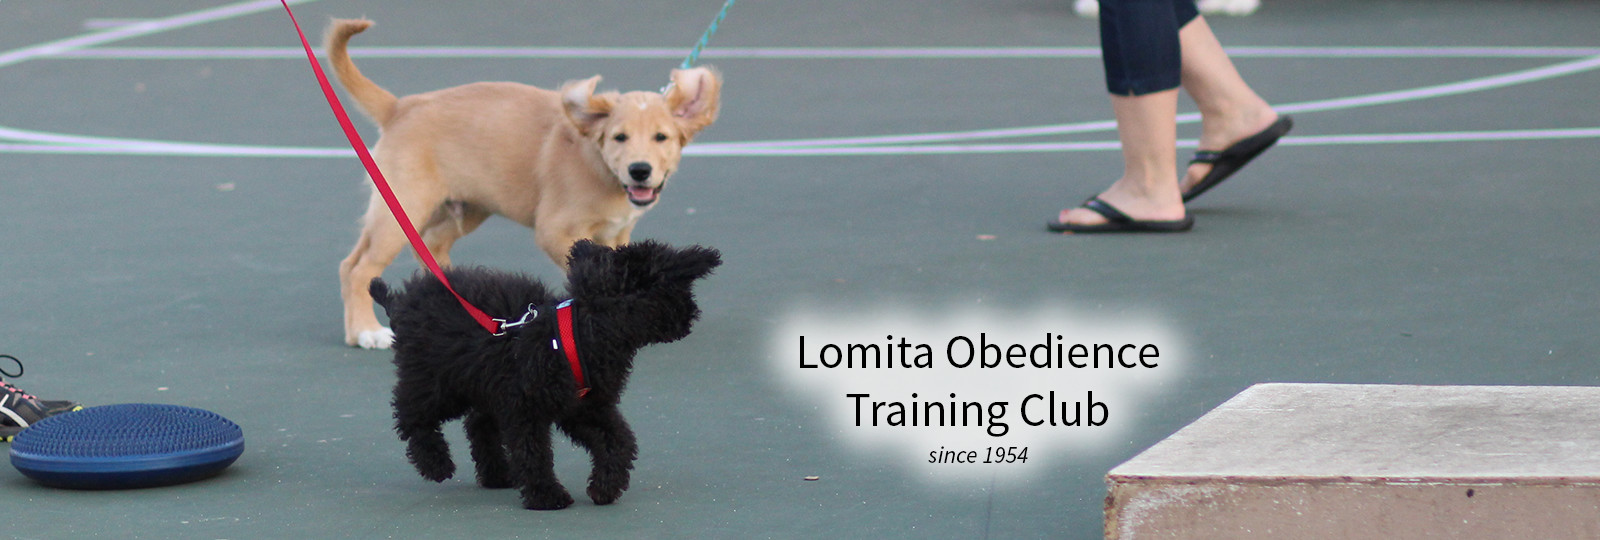 Lomita Dog Training - puppies playing